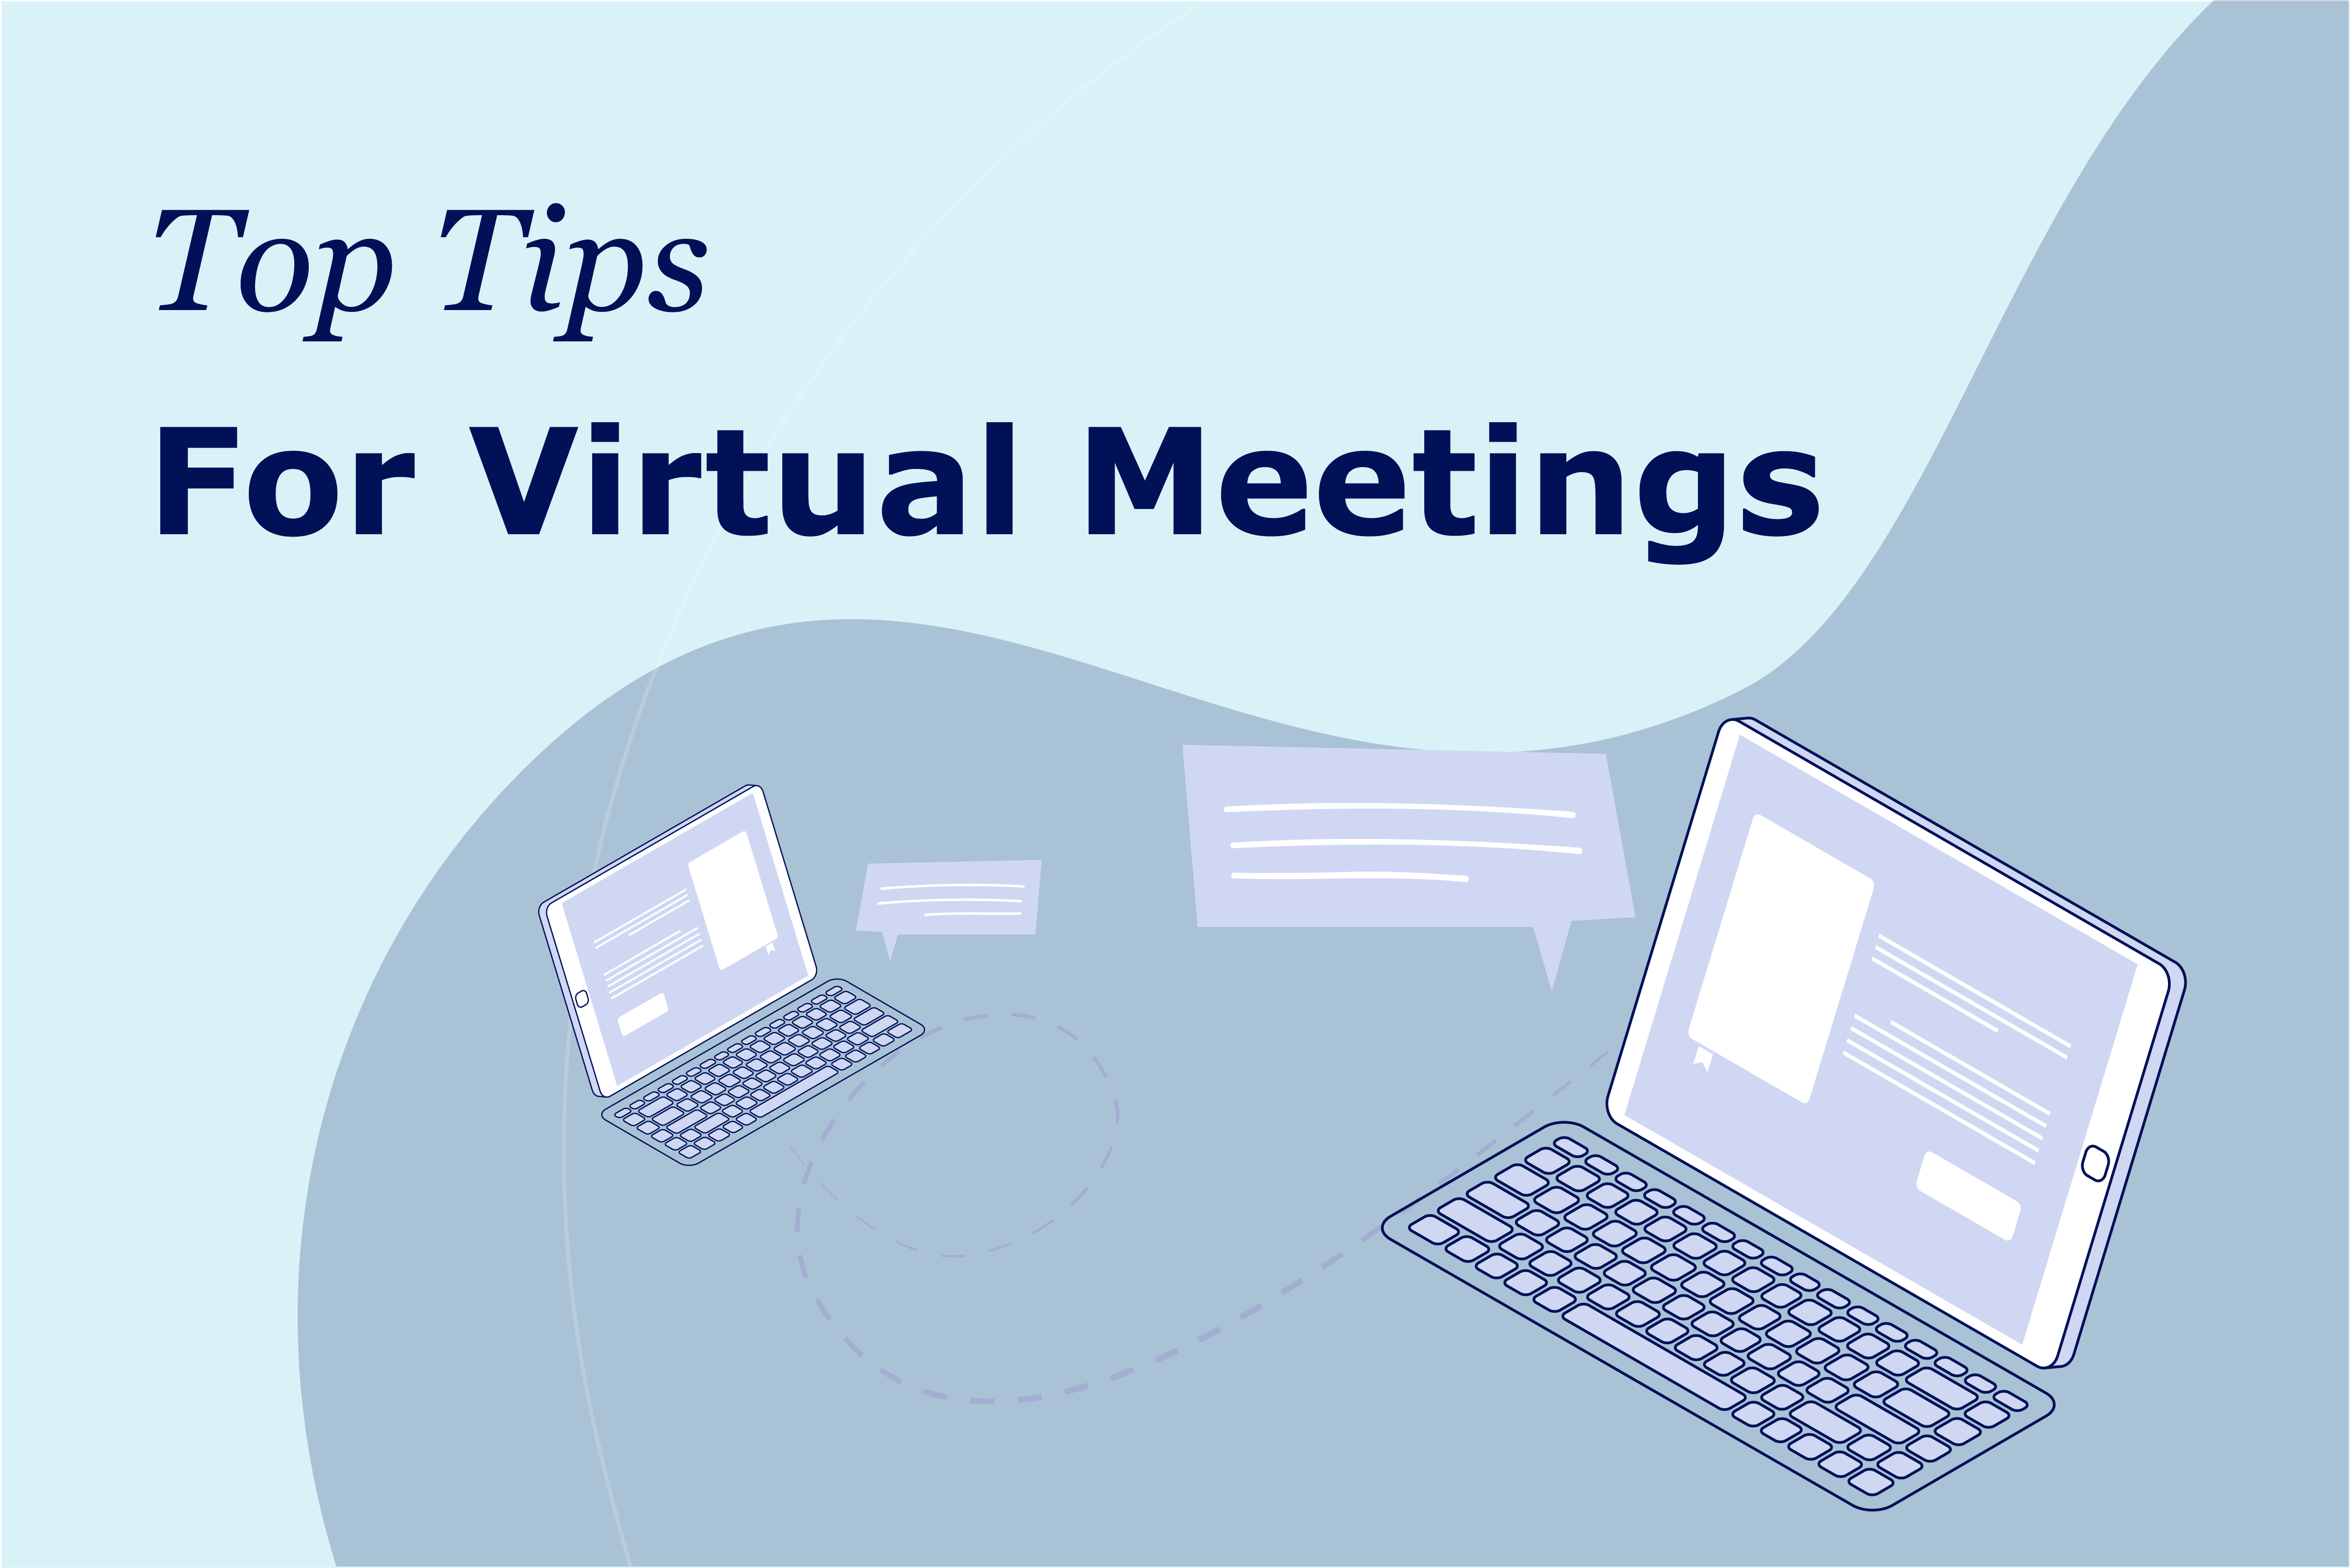 Top Tips for Virtual Meetings